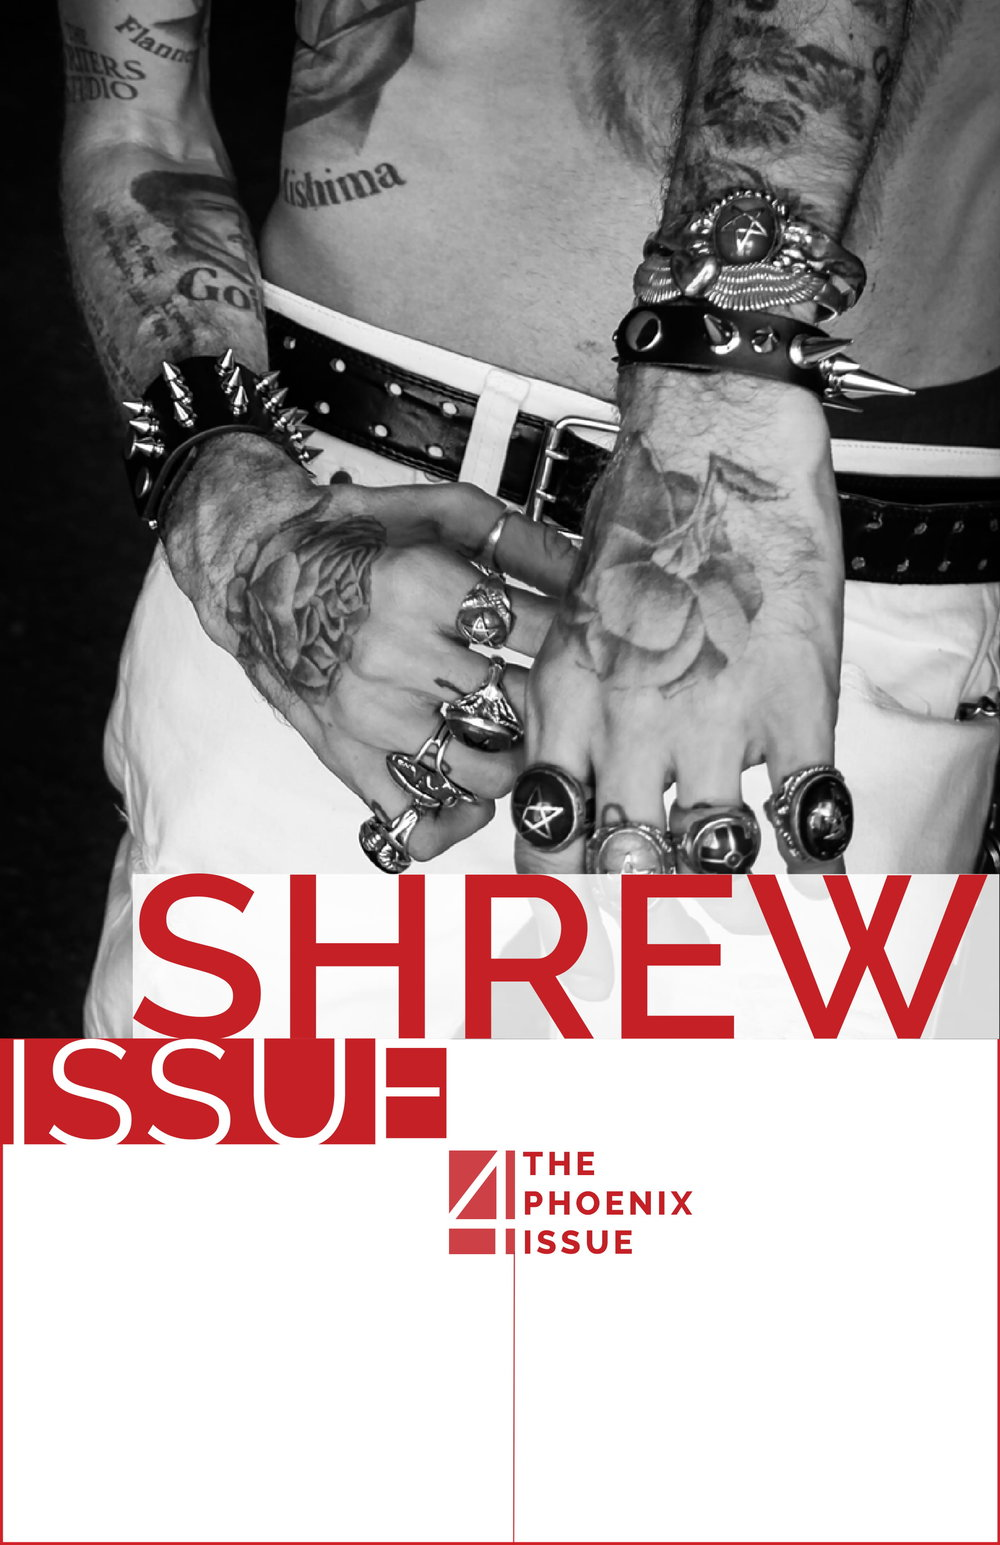 Issue 4: The Phoenix Issue (April 2018)